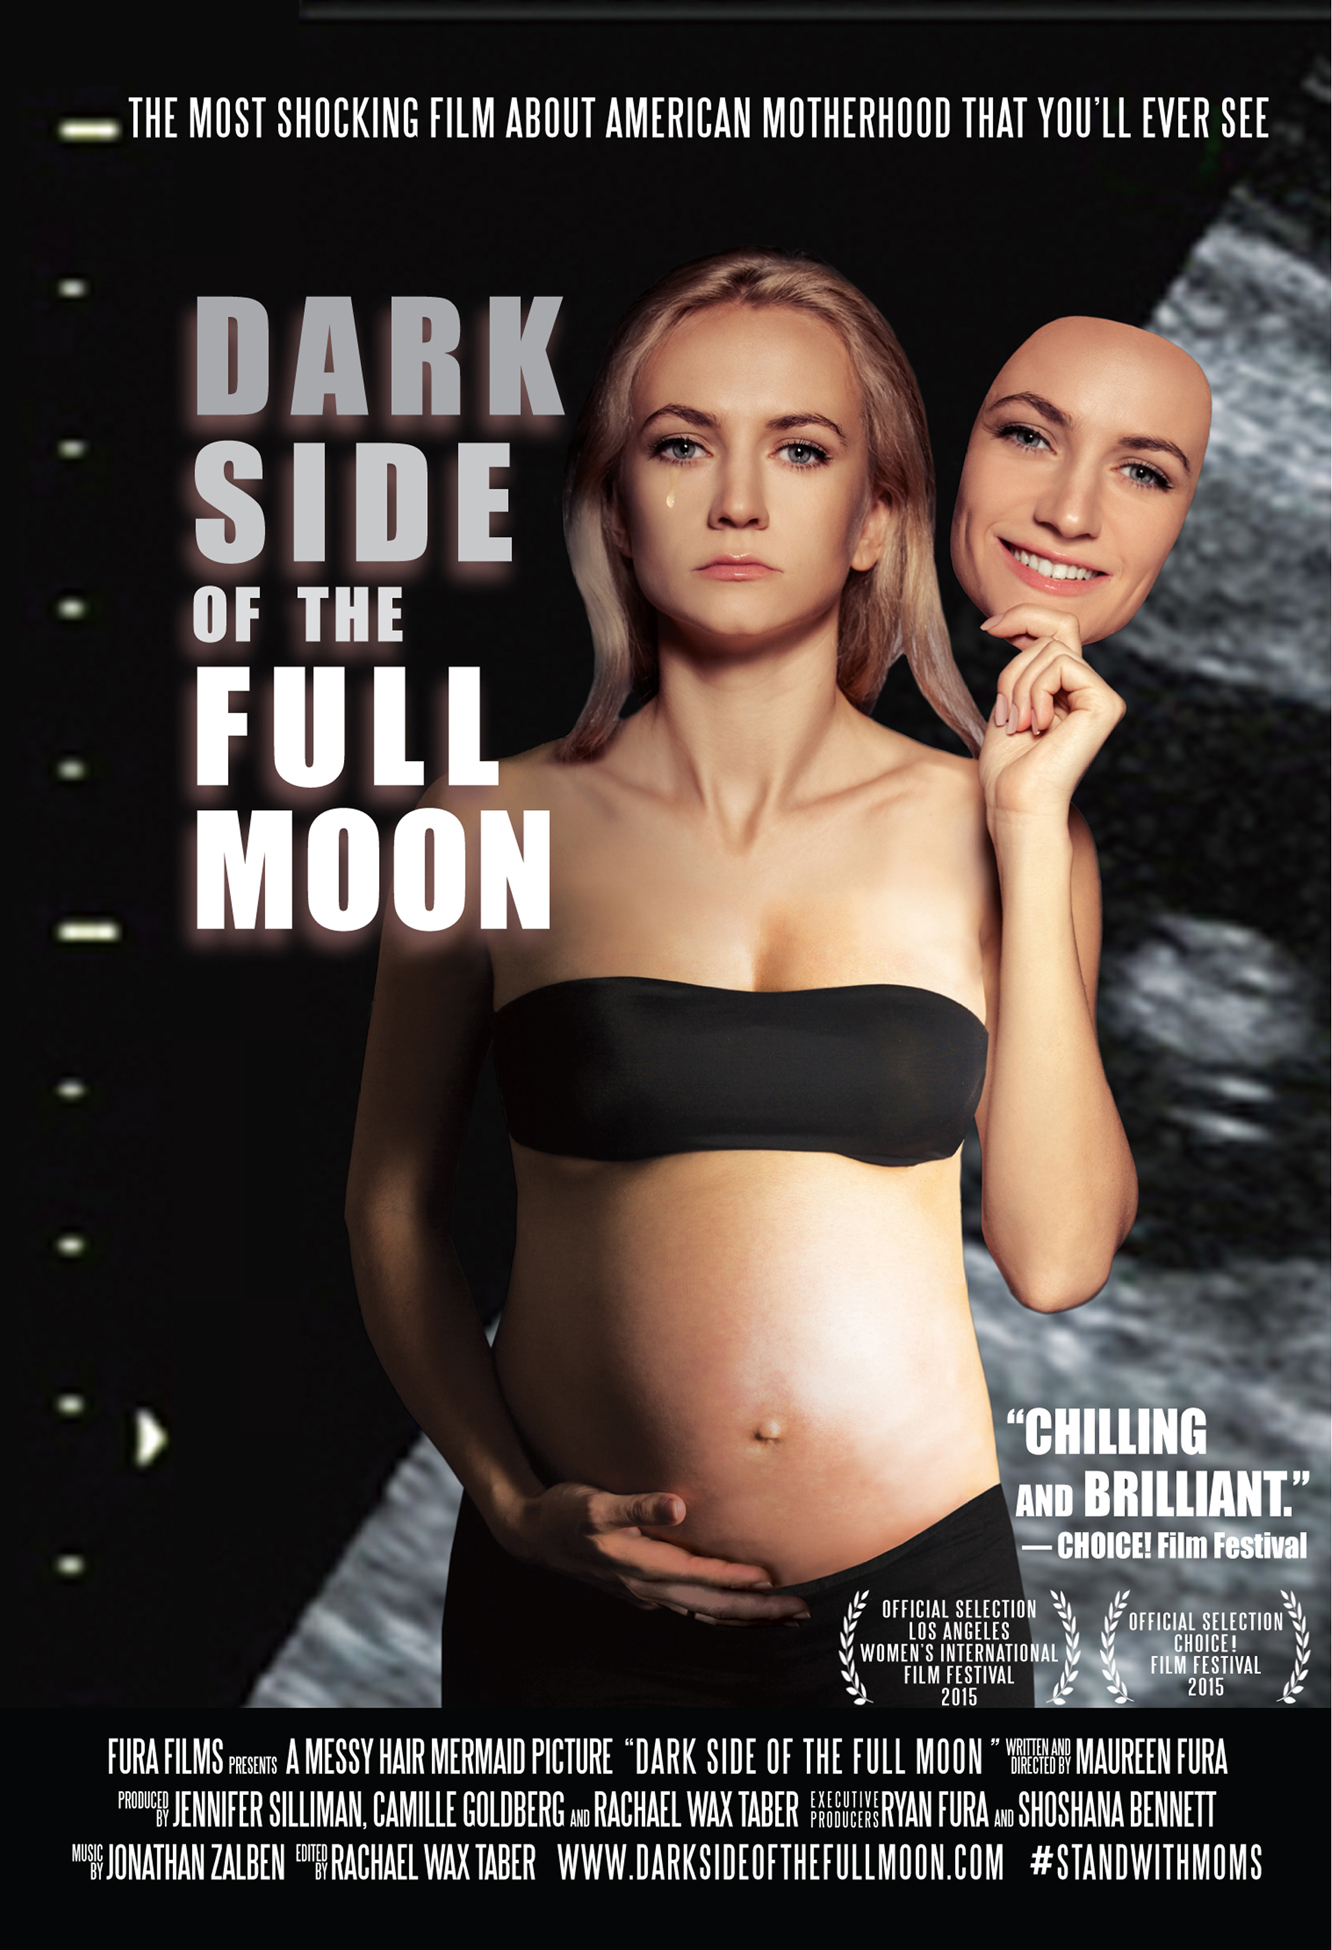 Dark Side of the Full Moon documentary poster.